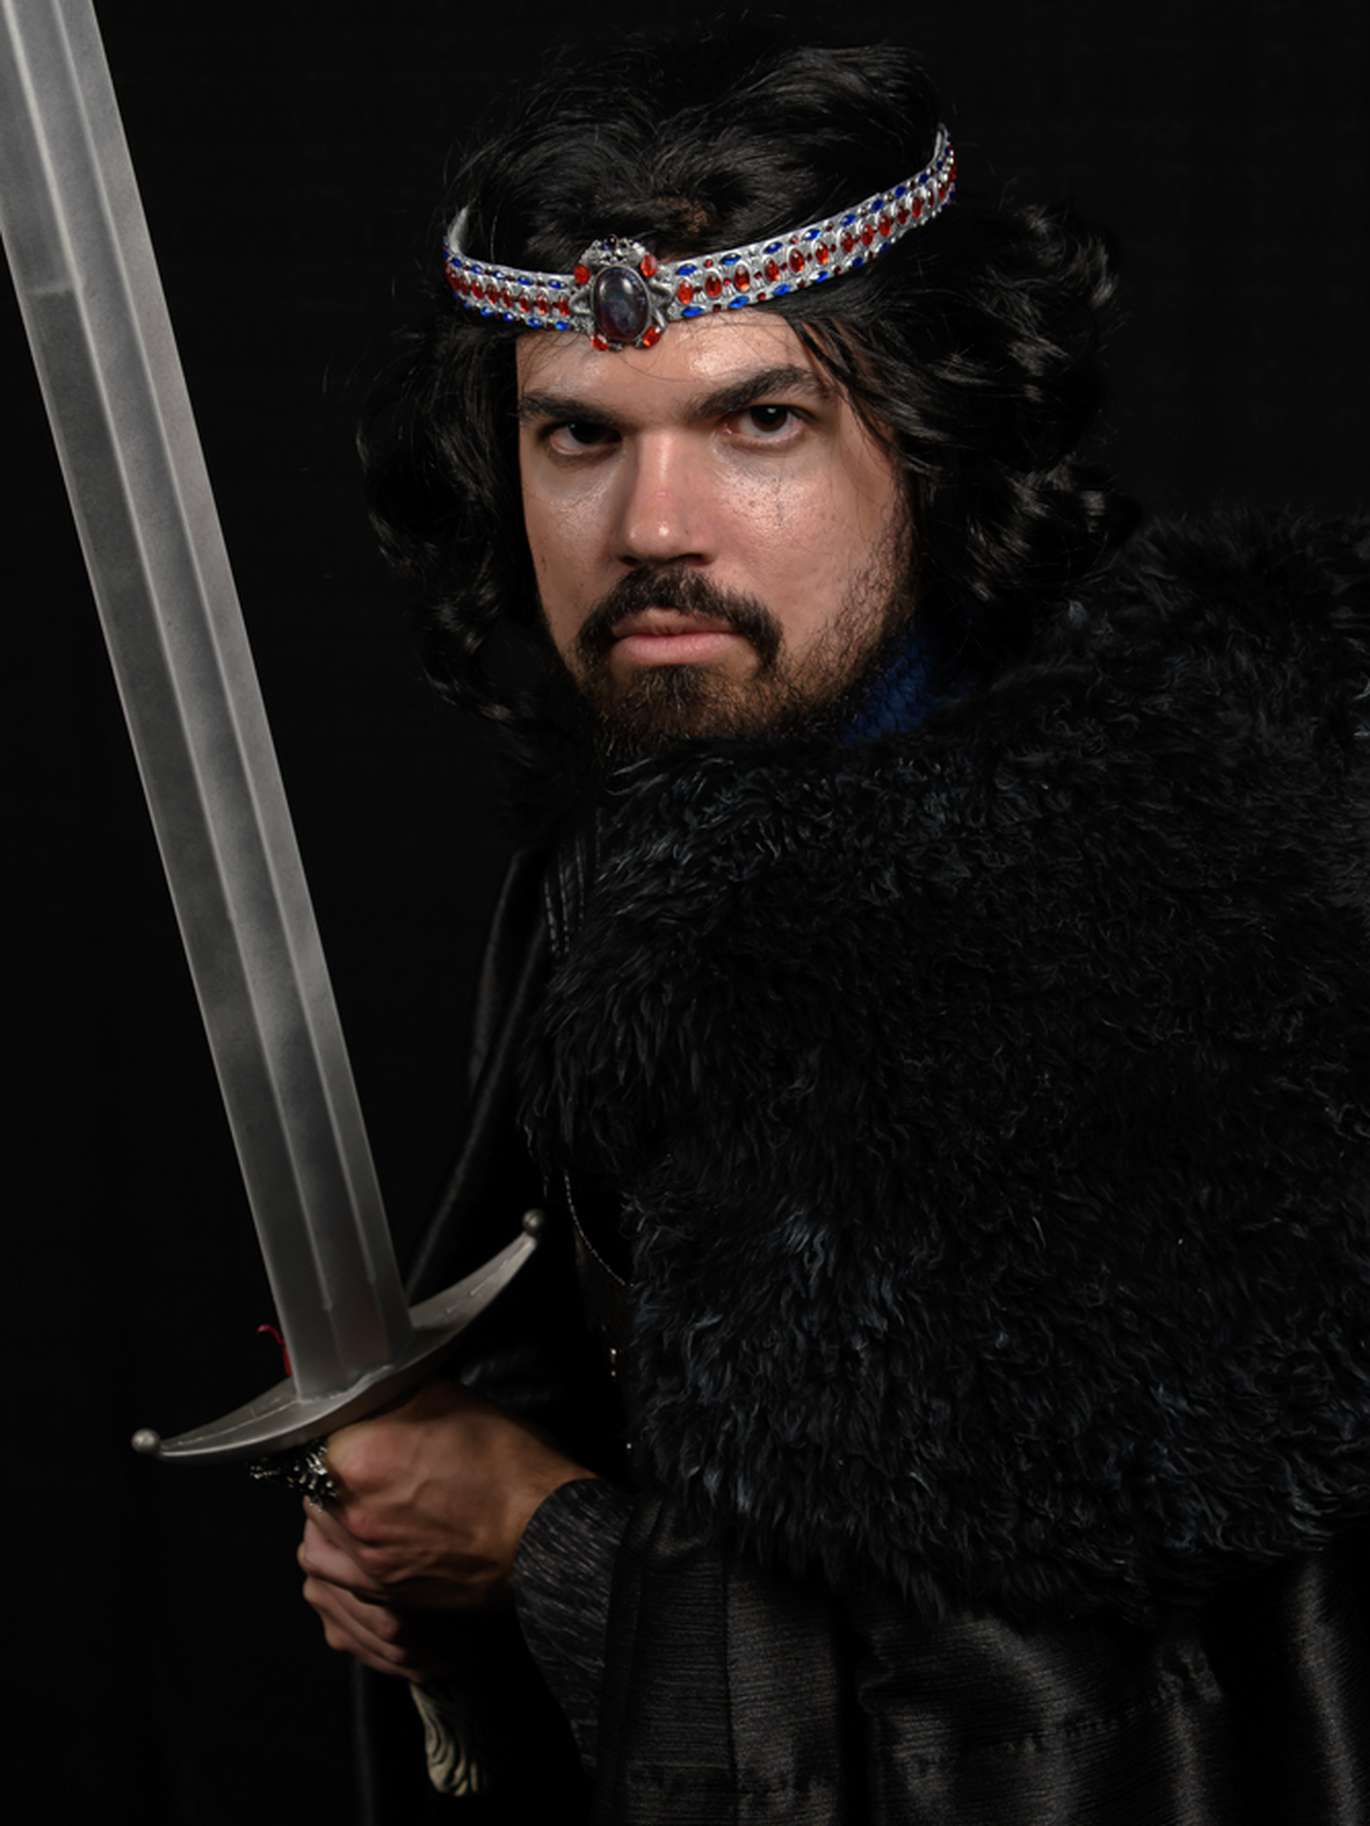 Anthony Acosta, 28, an IT specialist for USF, wearing a Game of Thrones-themed Jon Snow costume. [Courtesy of Anne Rosato]